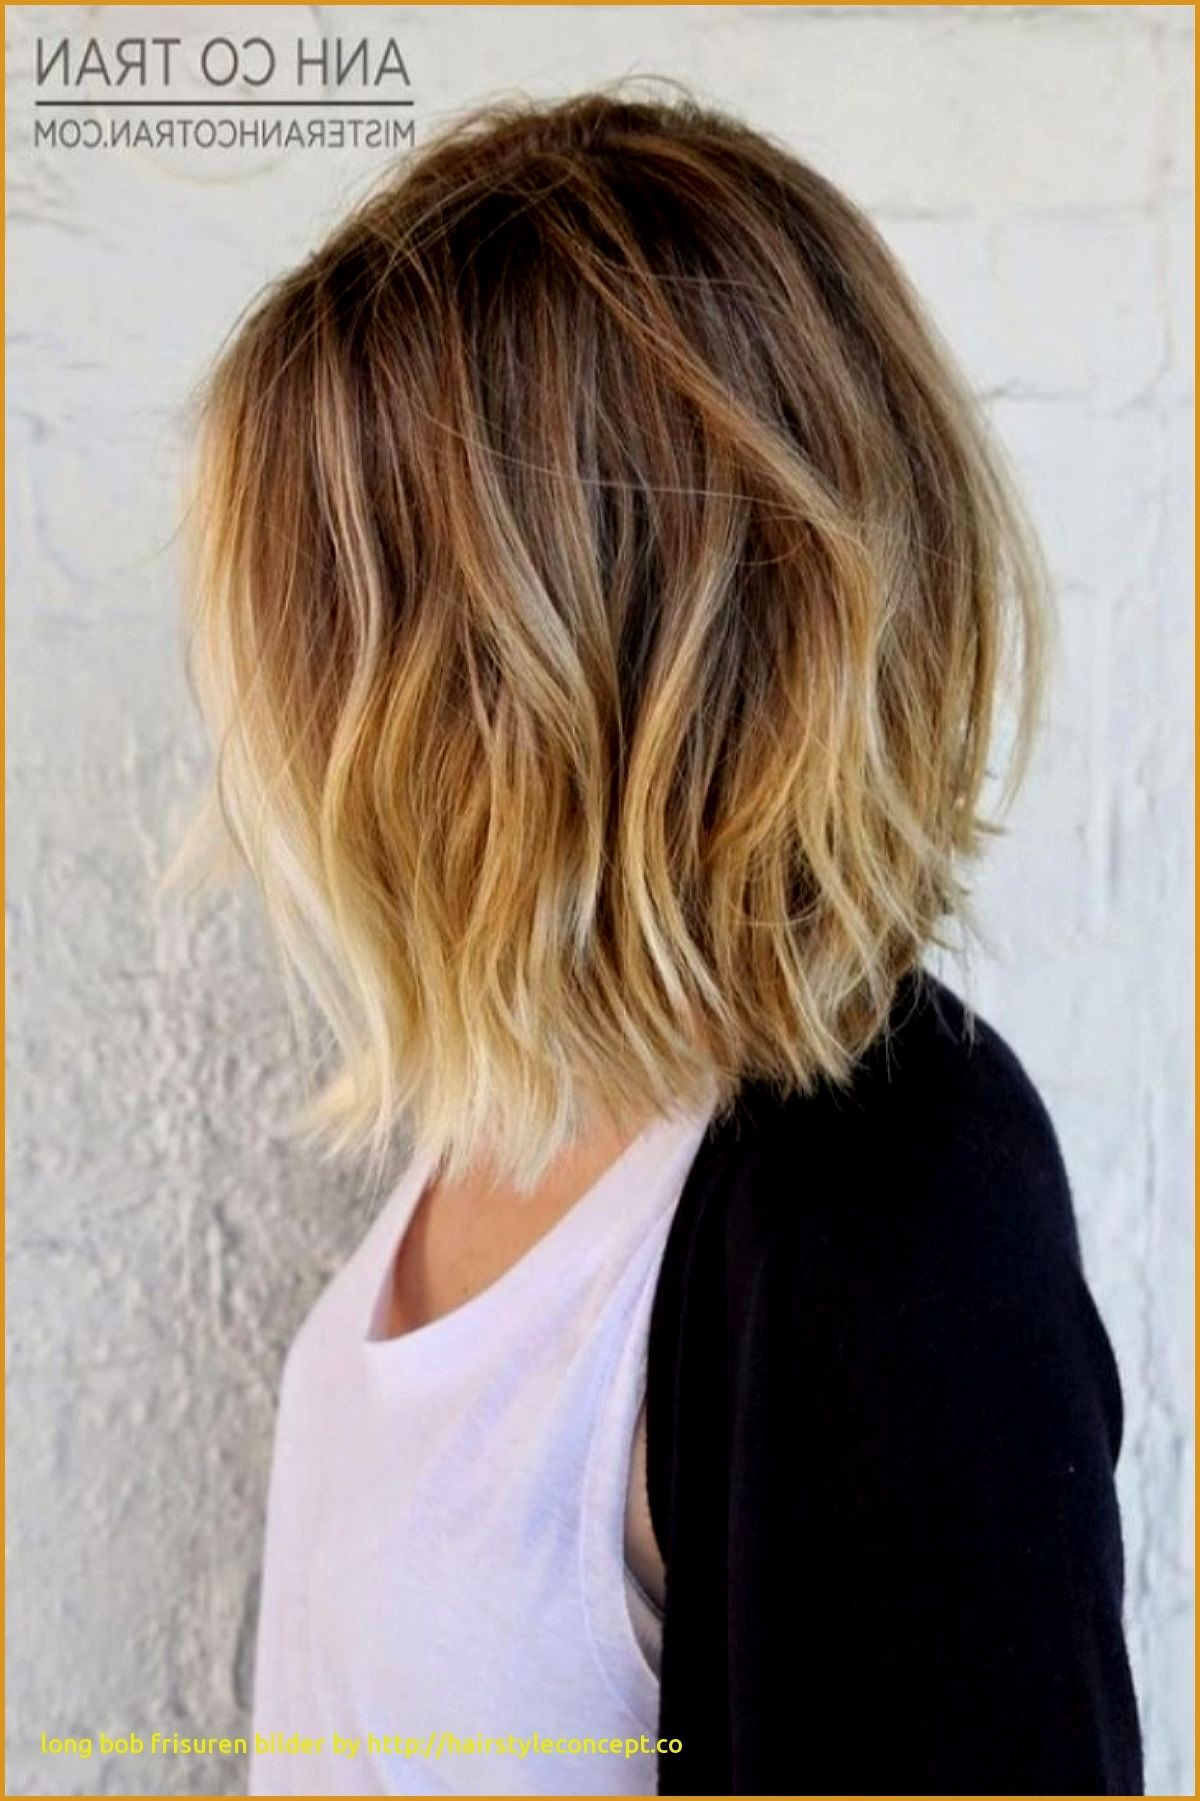 terribly cool hairstyles for short hair to make your own collection-Unique Hairstyles for Short Hair Concepts to yourself